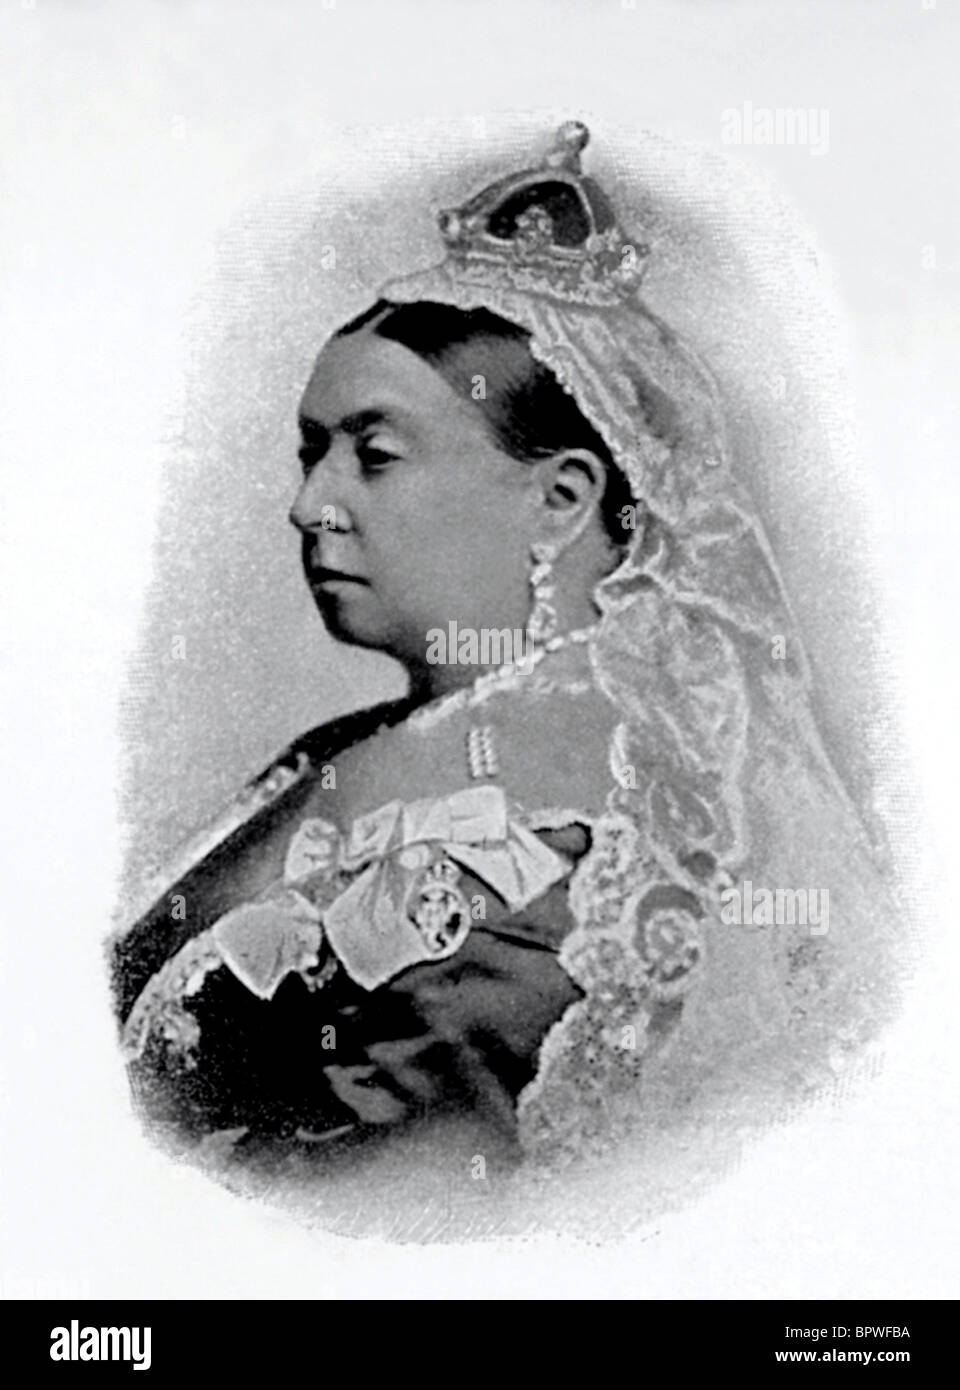 QUEEN VICTORIA QUEEN OF ENGLAND 1837 - 1901 10 June 1885 - Stock Image